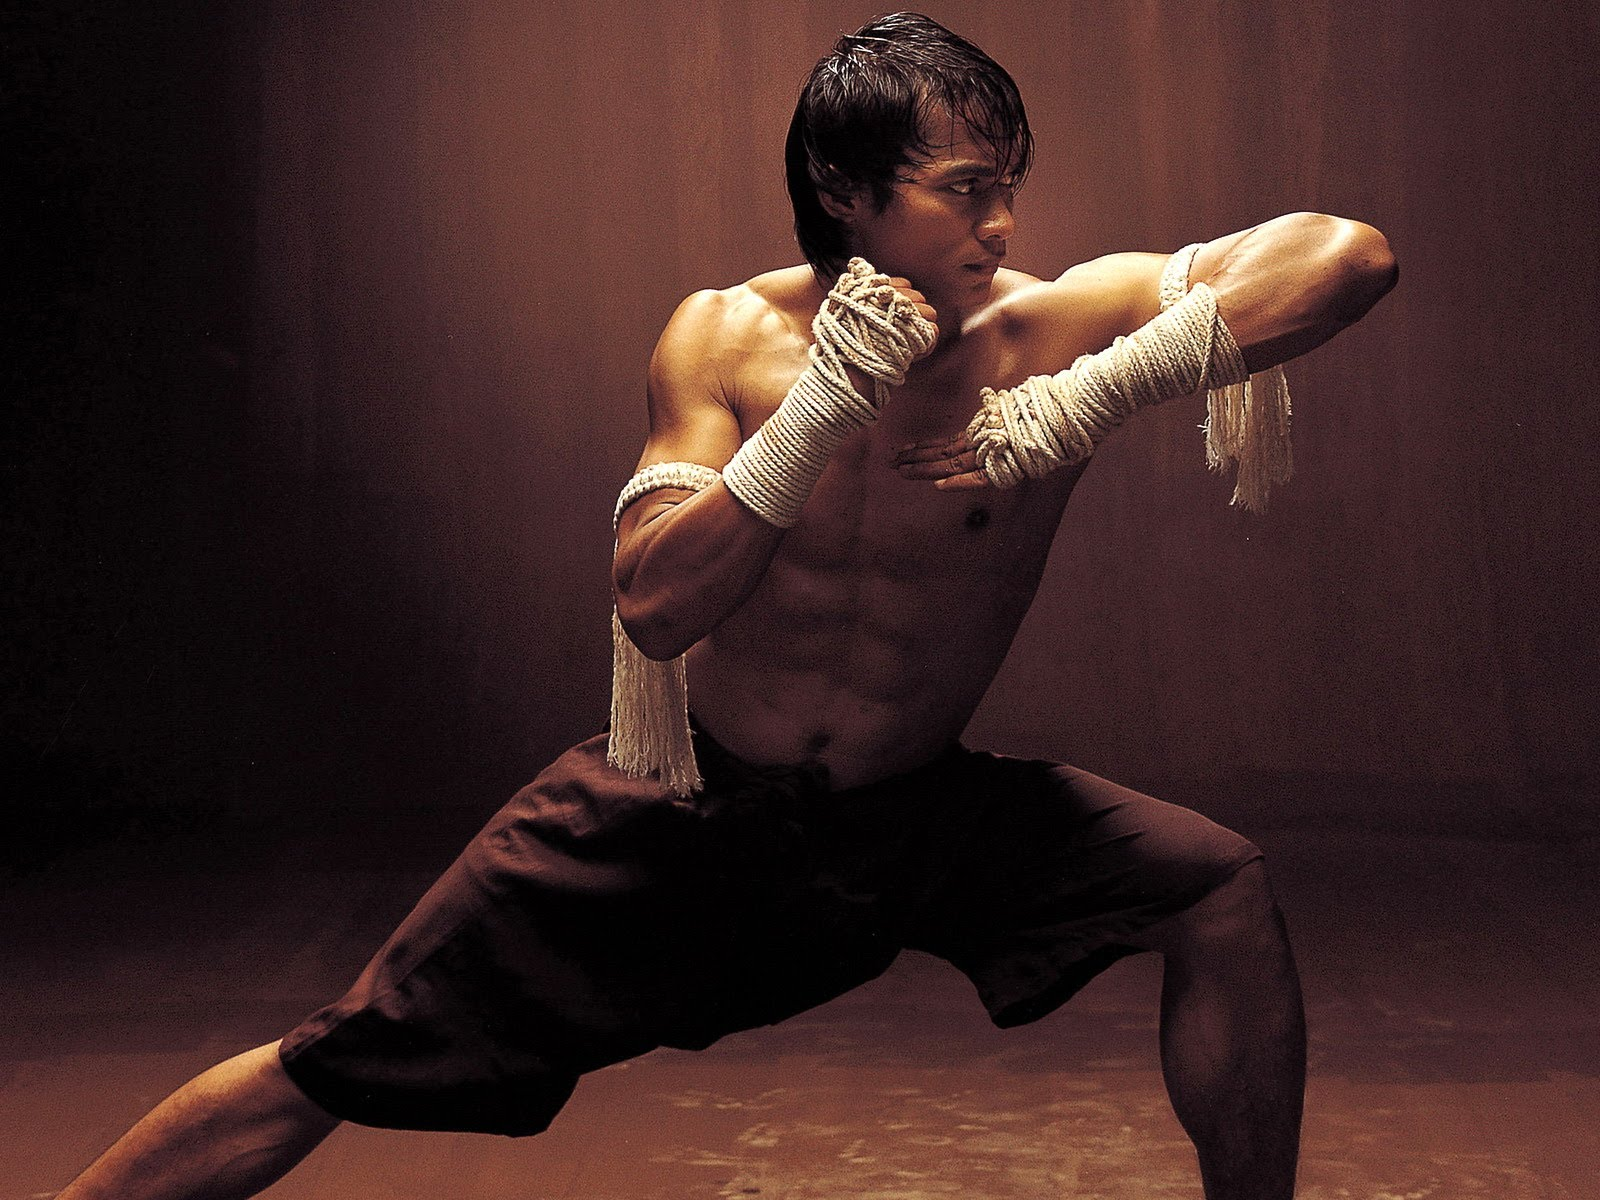 Tony Jaa widescreen wallpapers